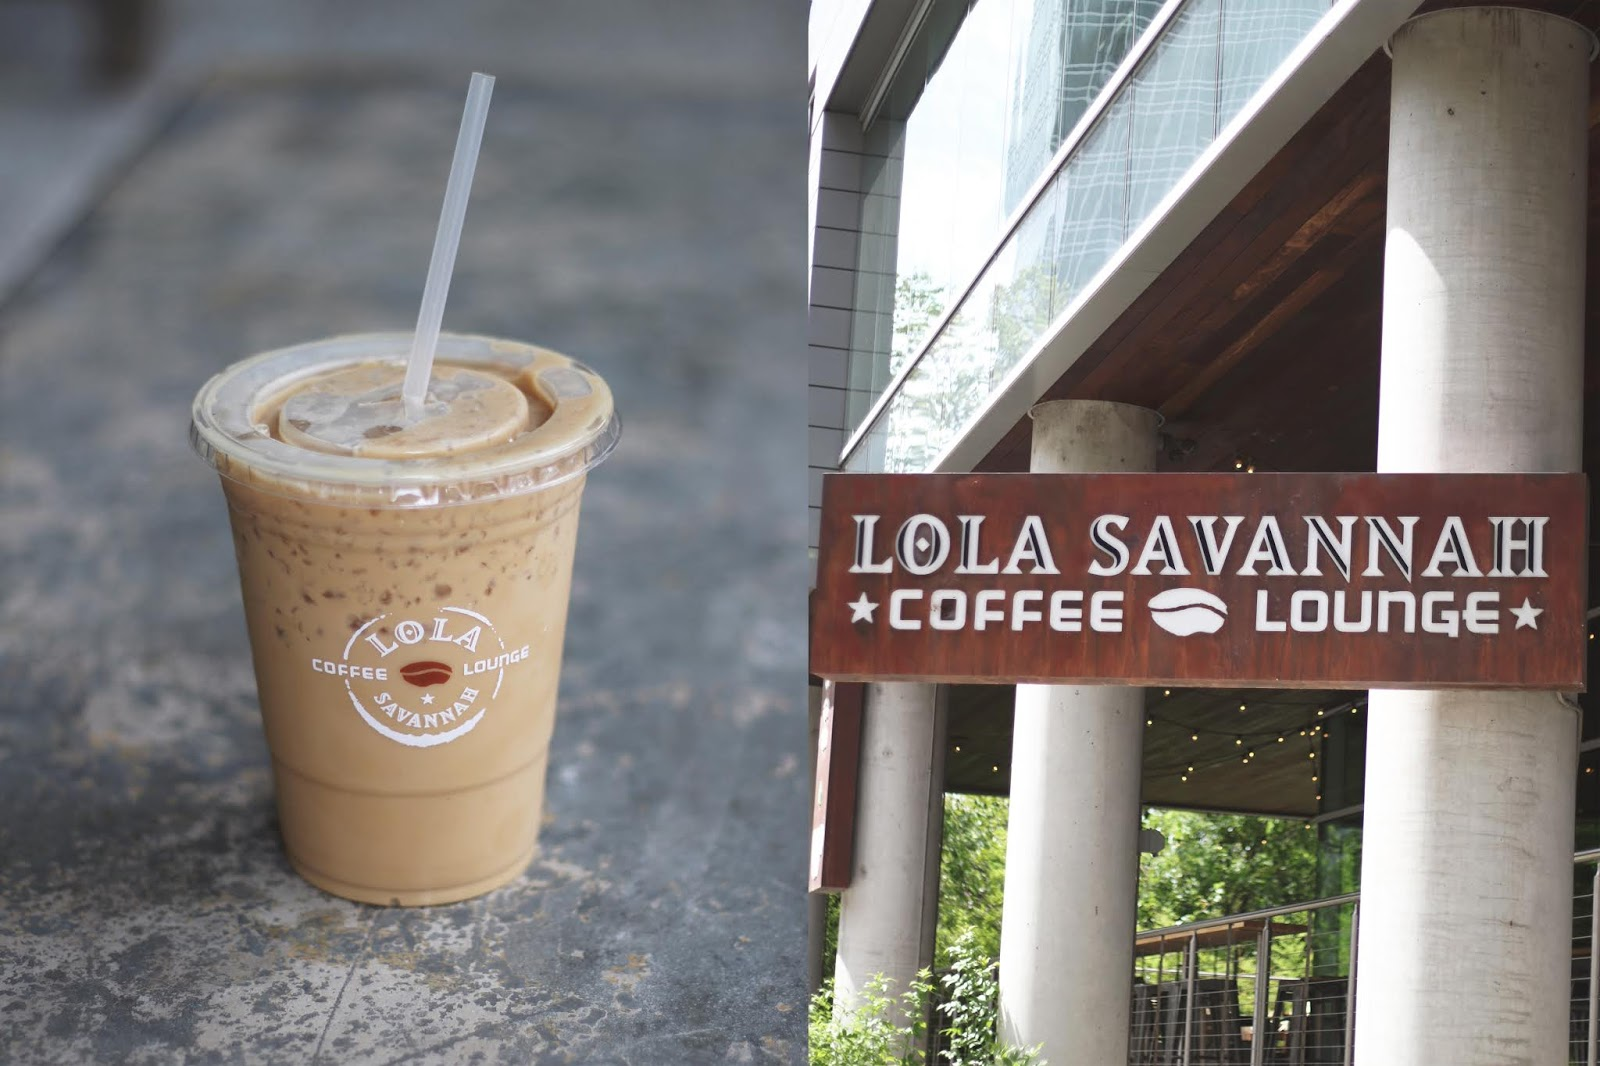 Lola Savannah Coffee Lounge Austin, Iced Coffee, Cozy Coffee Shop, Coffee Shops Vibe